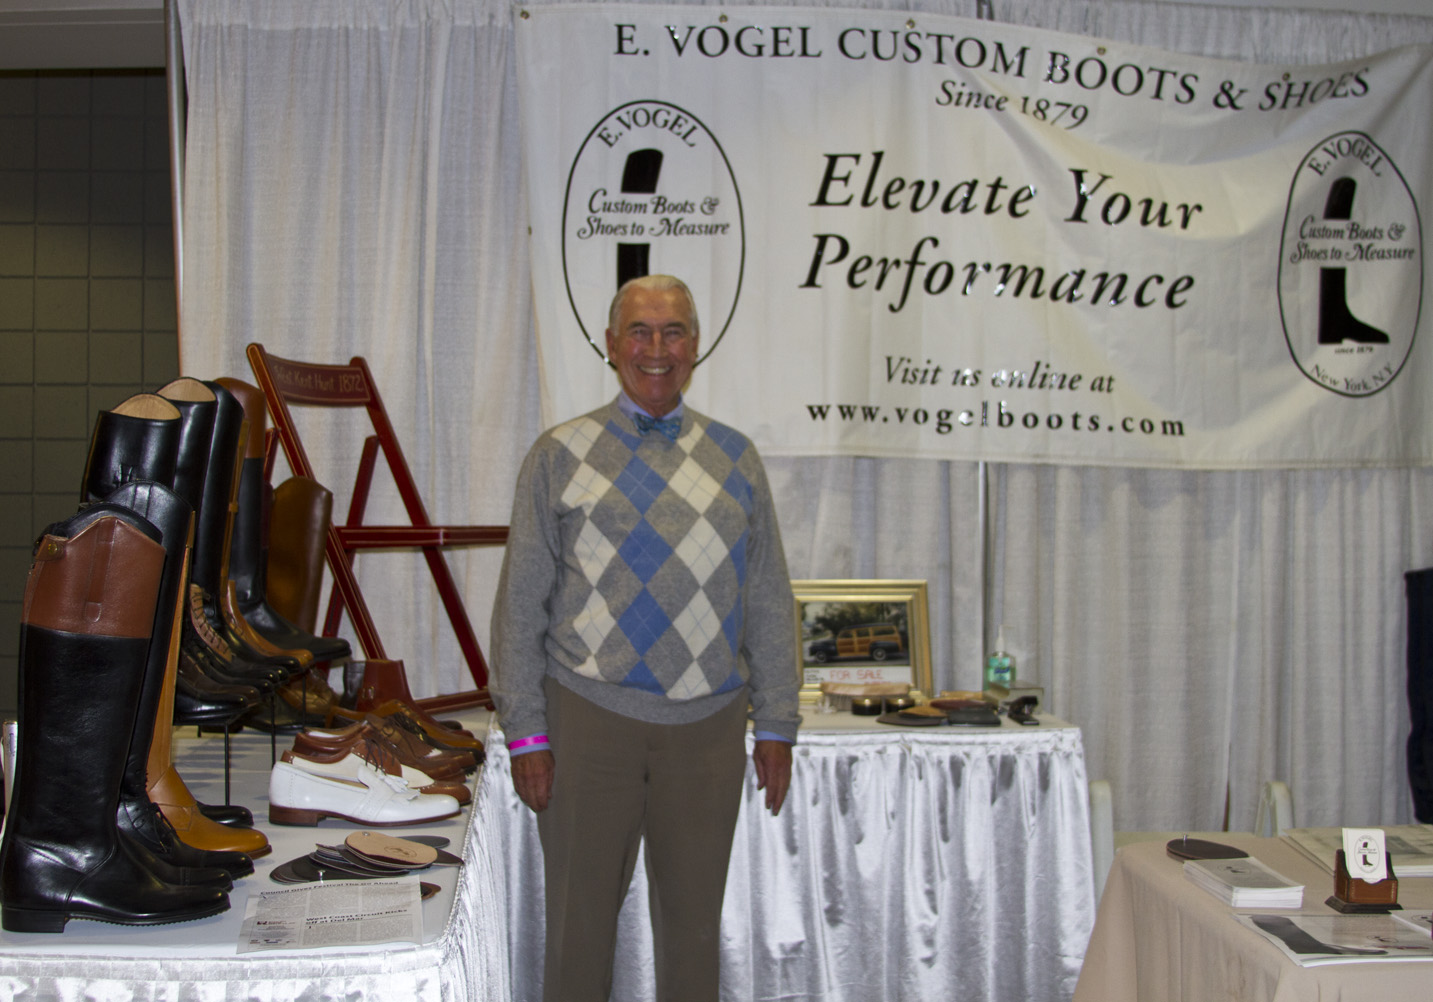 2e56752742f Meeting Mr. Vogel at the Washington International Horse Show 2012 ...